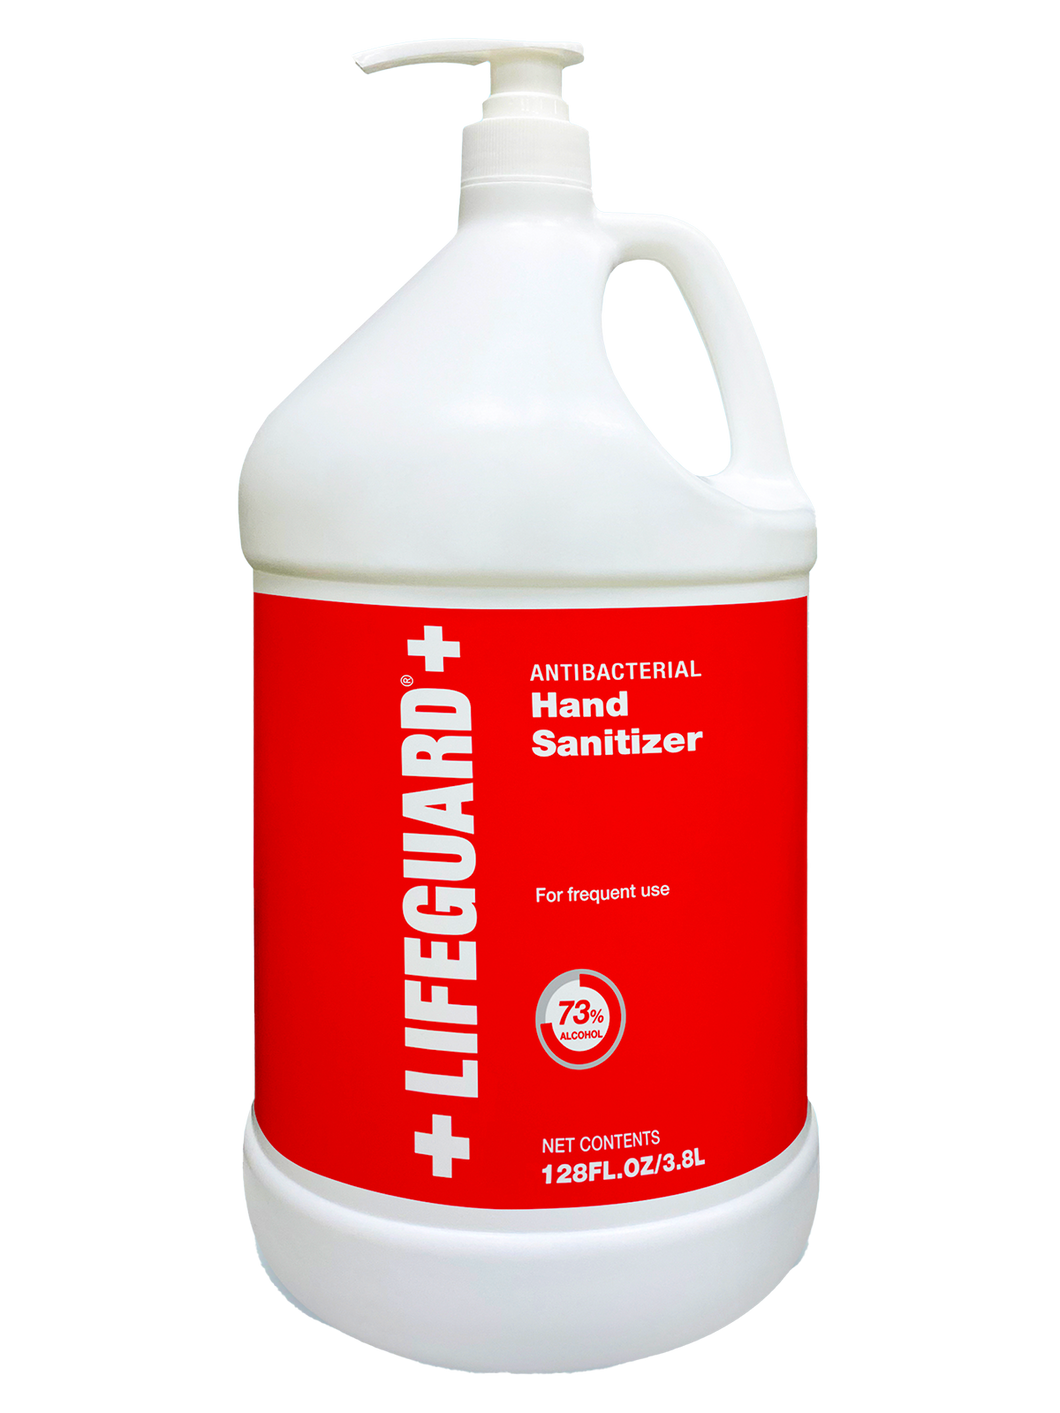 LIFEGUARD ANTISEPTIC LIQUID HAND SANITIZER 1 Gallon -